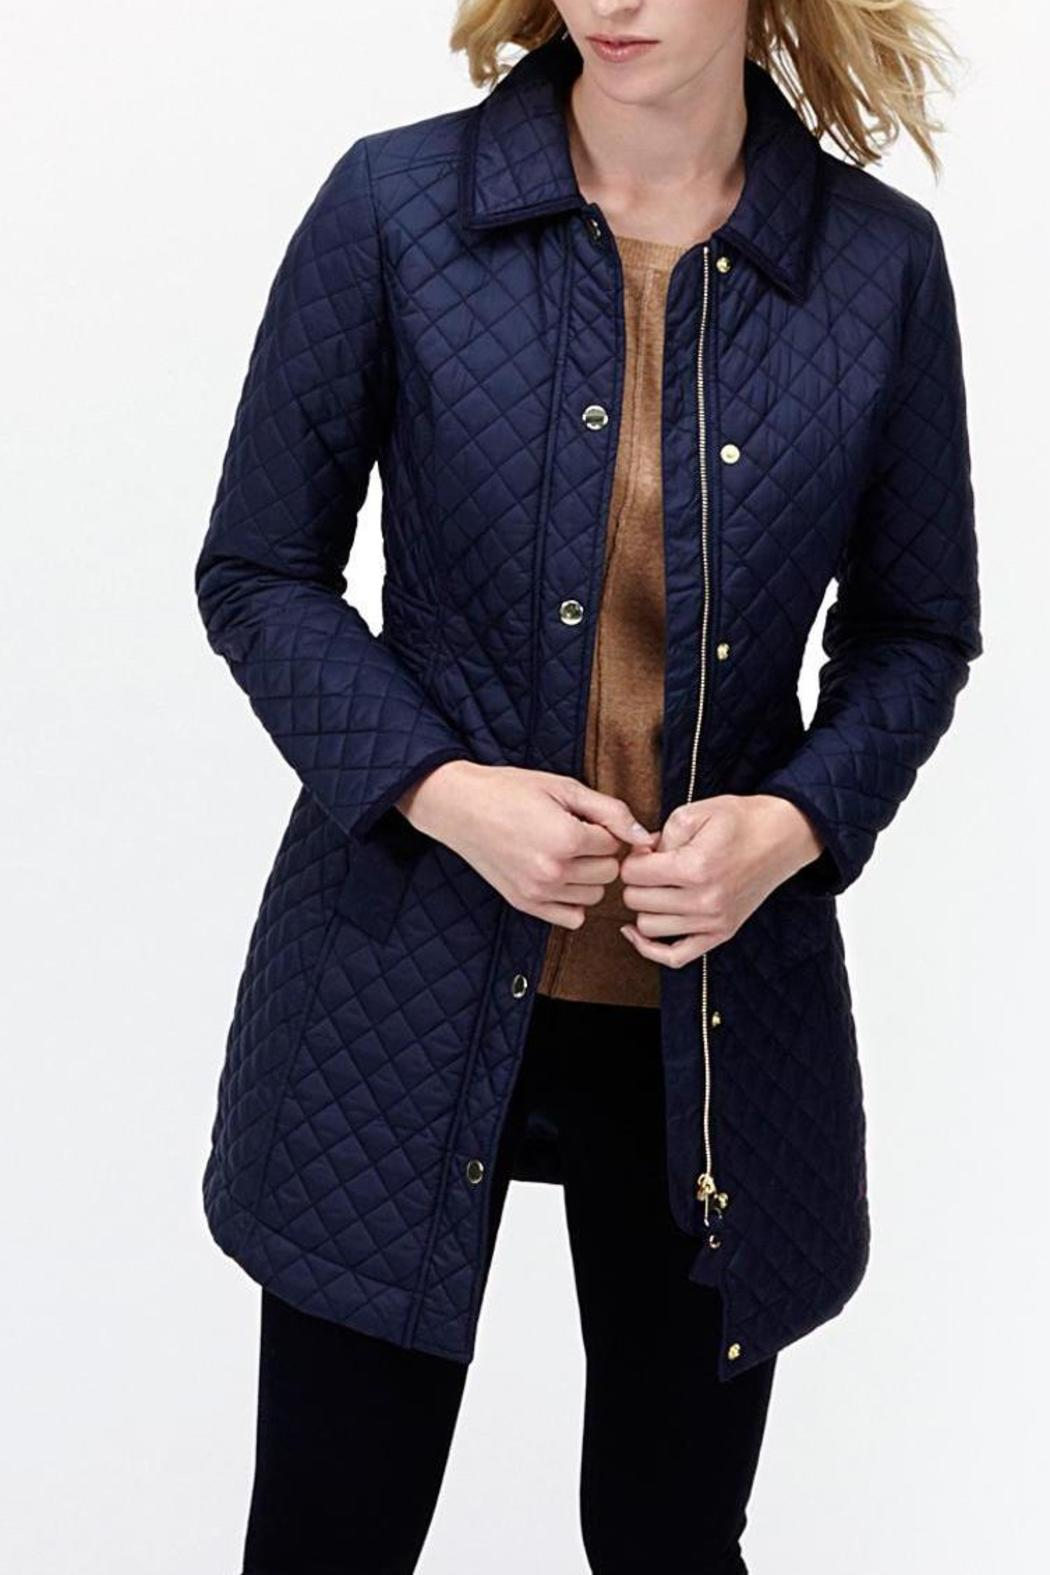 Joules Fairhurst Quilted Jacket from New Jersey by Lotus Boutique ... : joules quilted jackets - Adamdwight.com